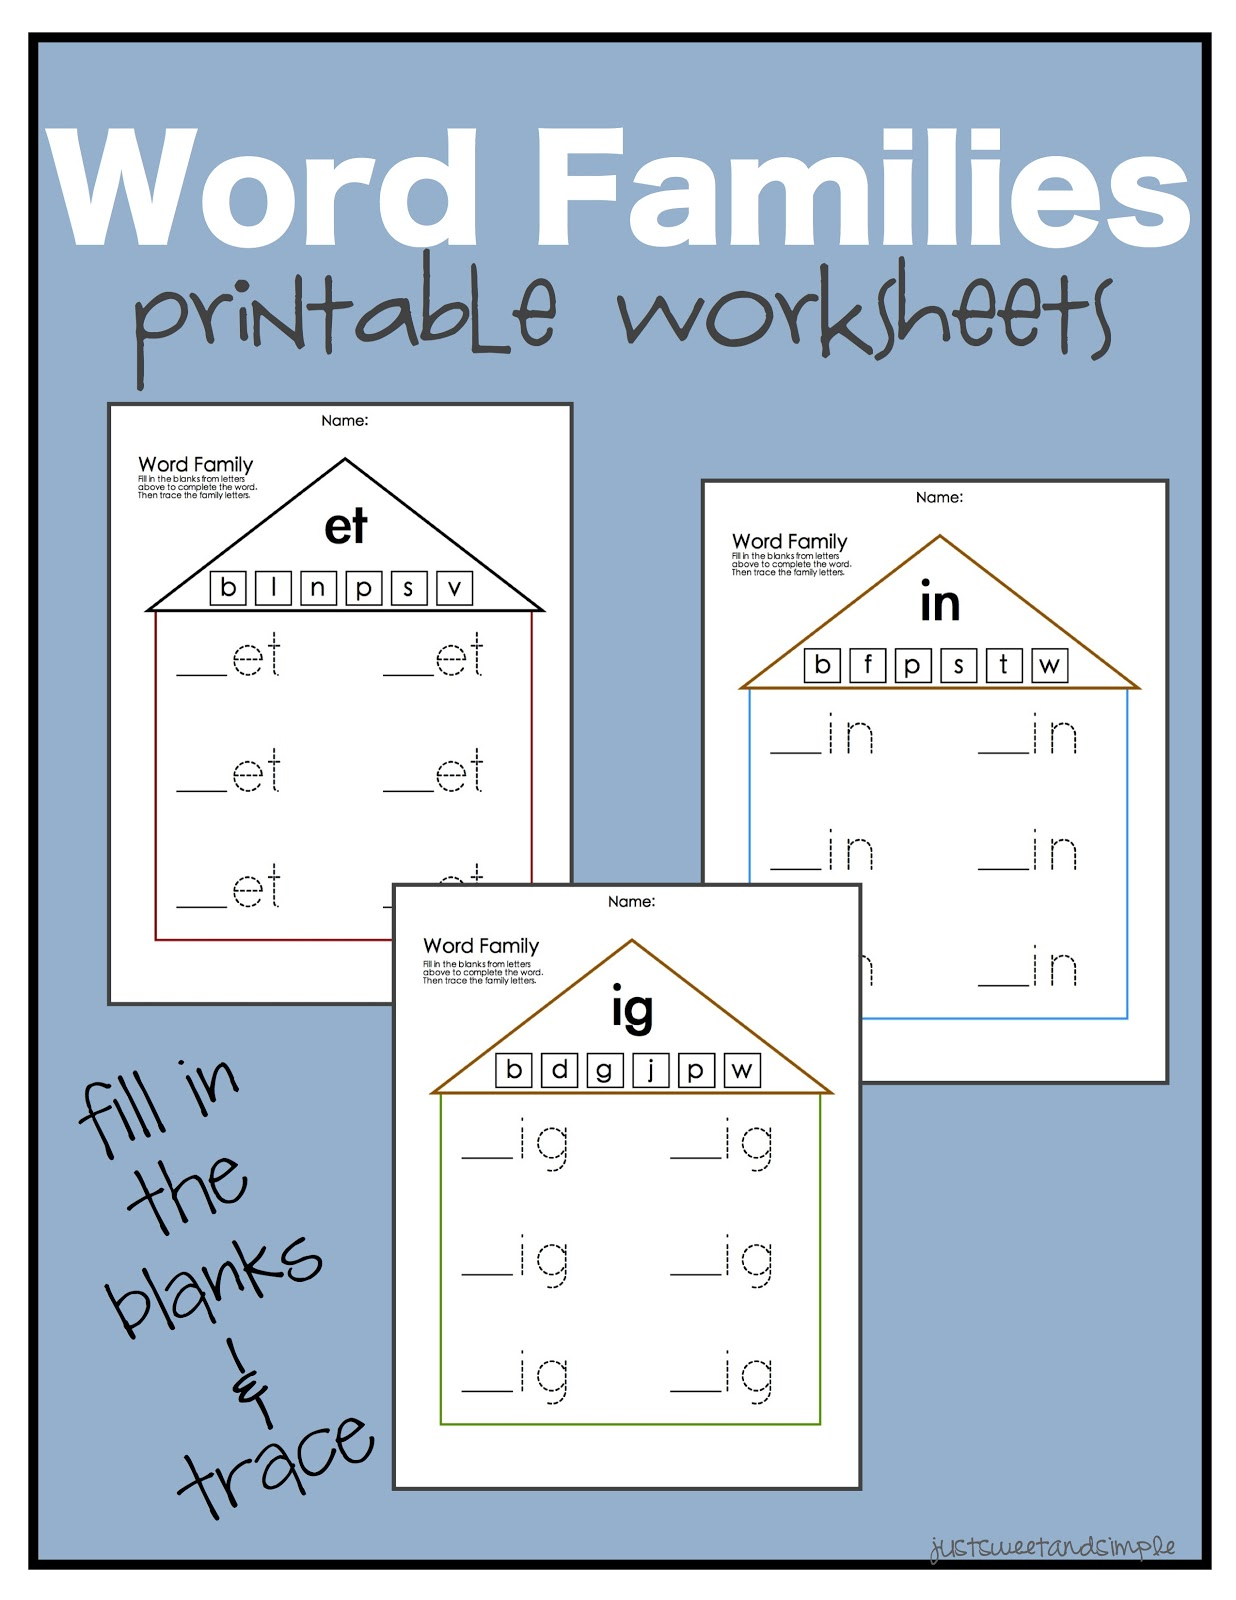 Free Worksheets Library | Download and Print Worksheets | Free on ...